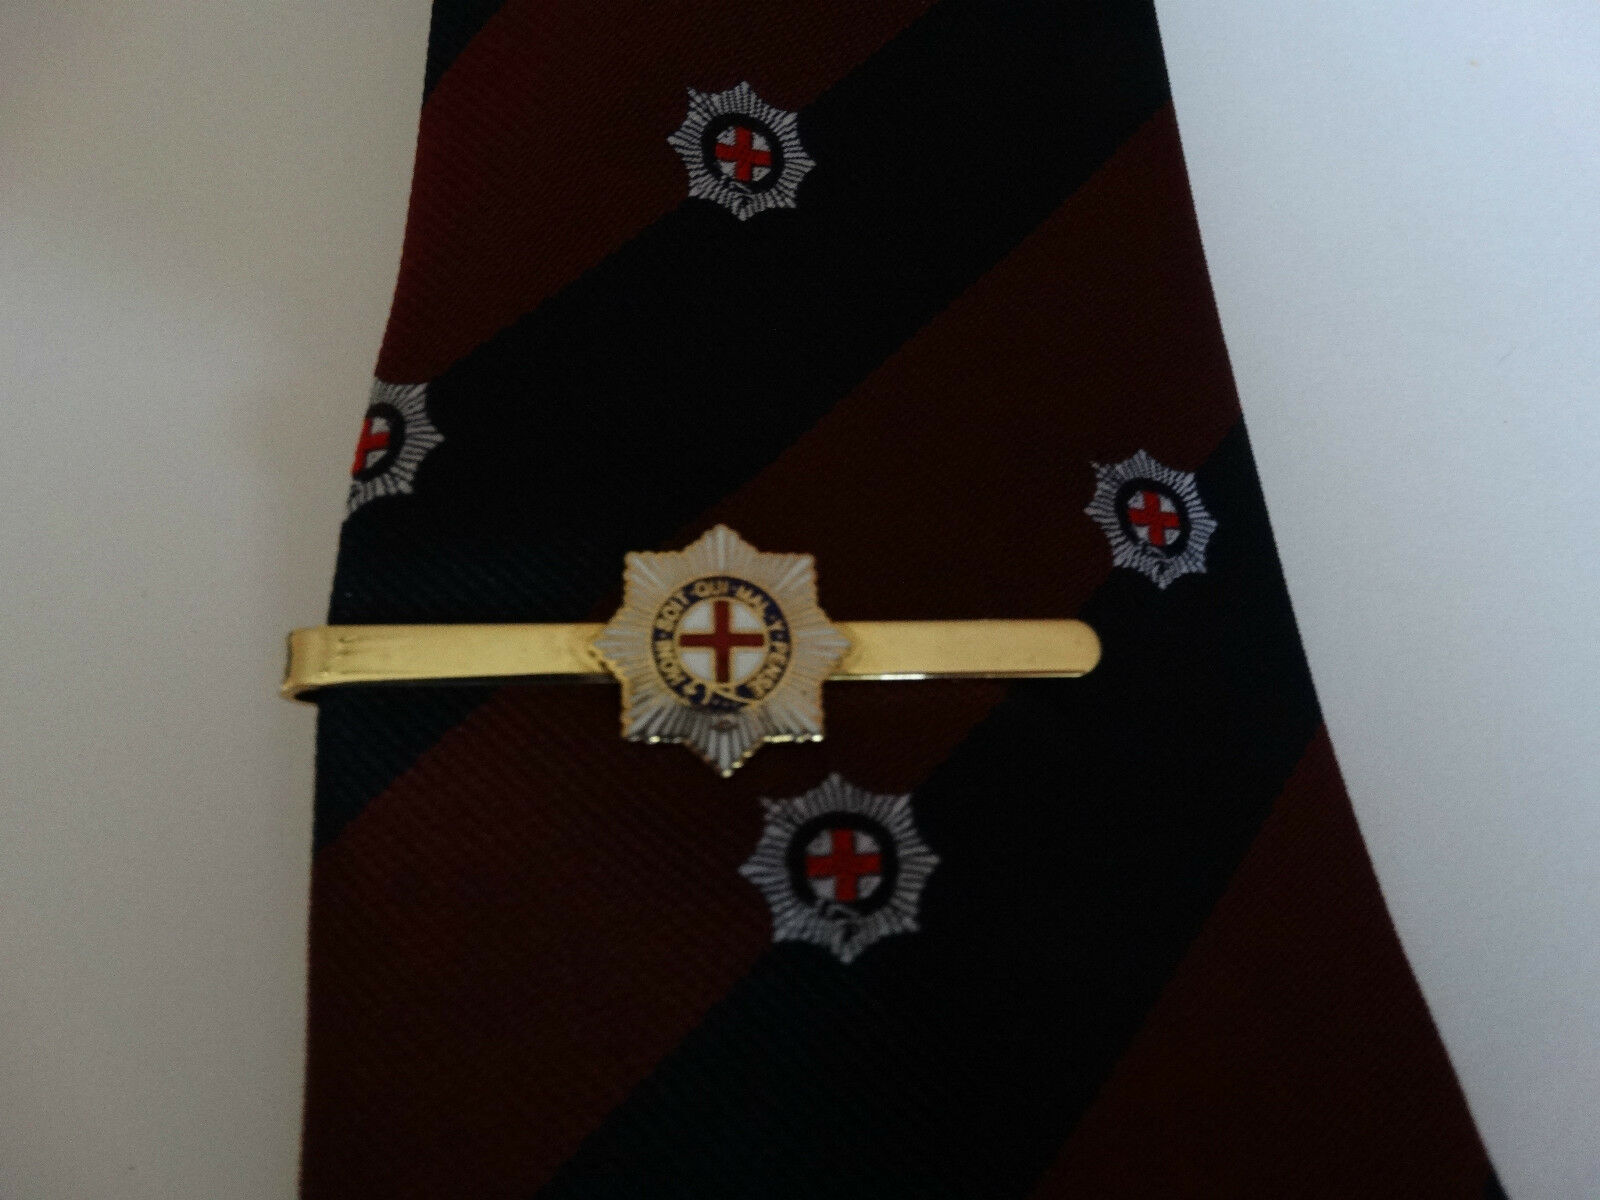 COLDSTREAM GUARDS Tie Grip and Coldstream Guards Motif Tie Gift set